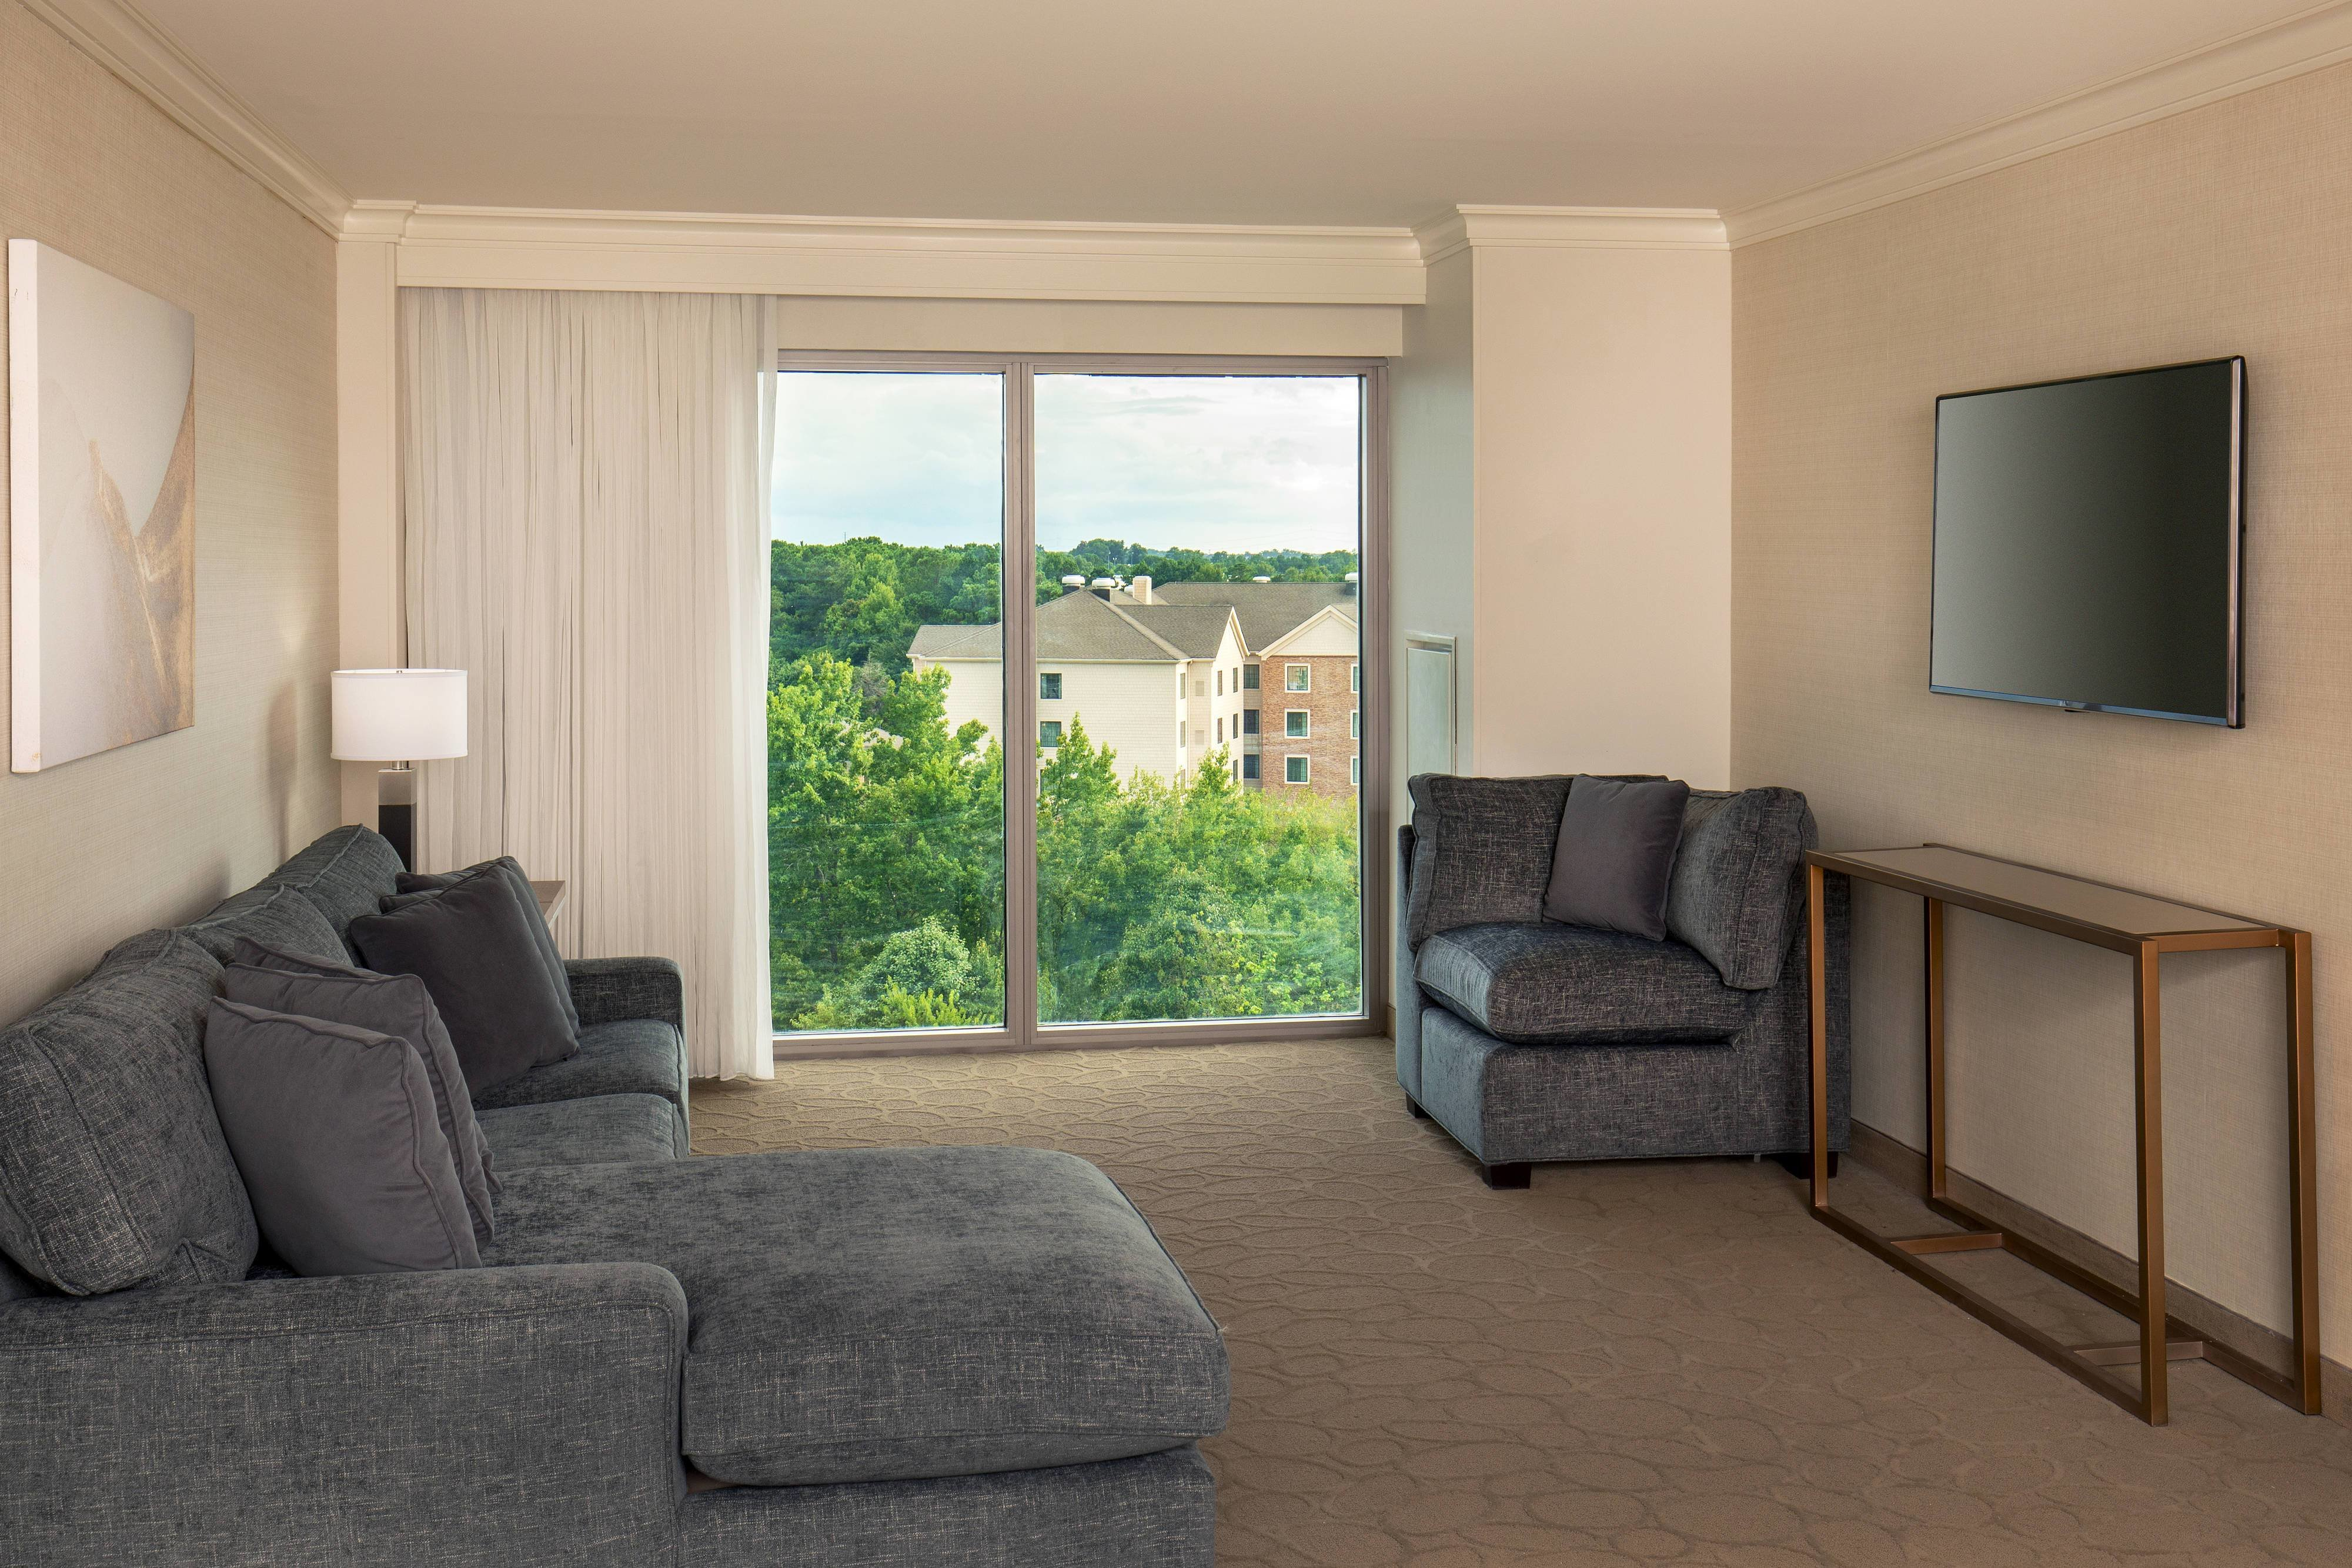 Best Chesapeake Va Hotel Suites And Rooms Delta Hotels With Pictures